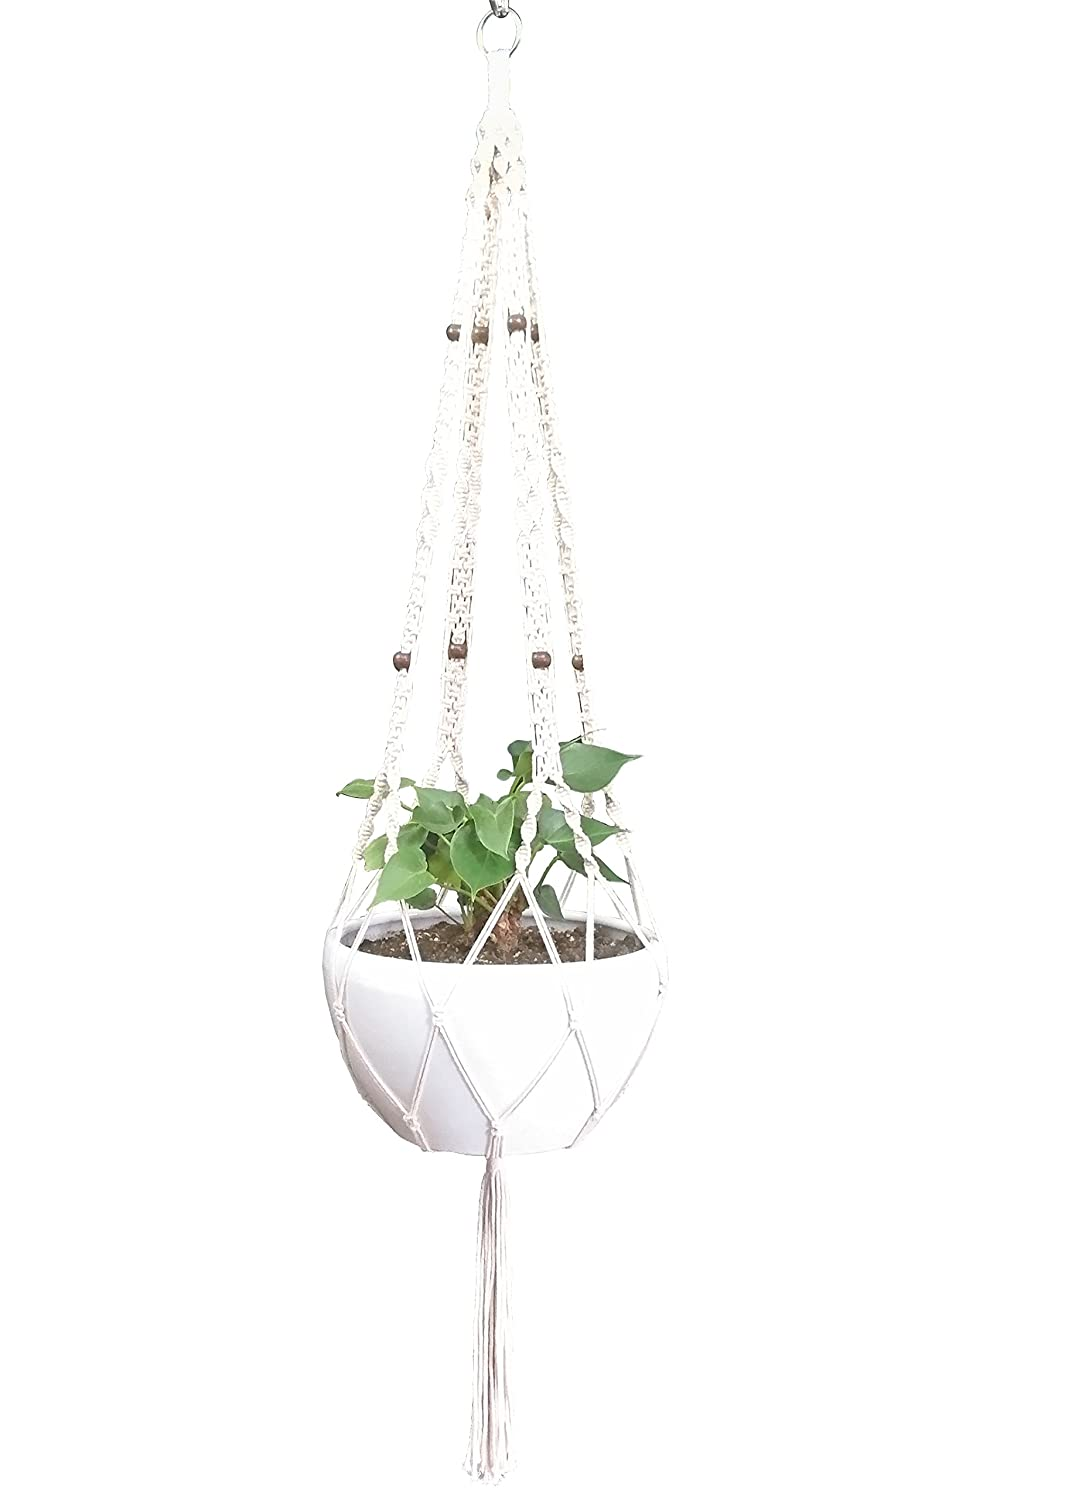 Hanpo Hemp Rope Macrame Plant Hanger Hanging Planter 4 Legs 59 Inch for 12-13 inch Plant Pot, Without Pot and Plant Cream-Cotton